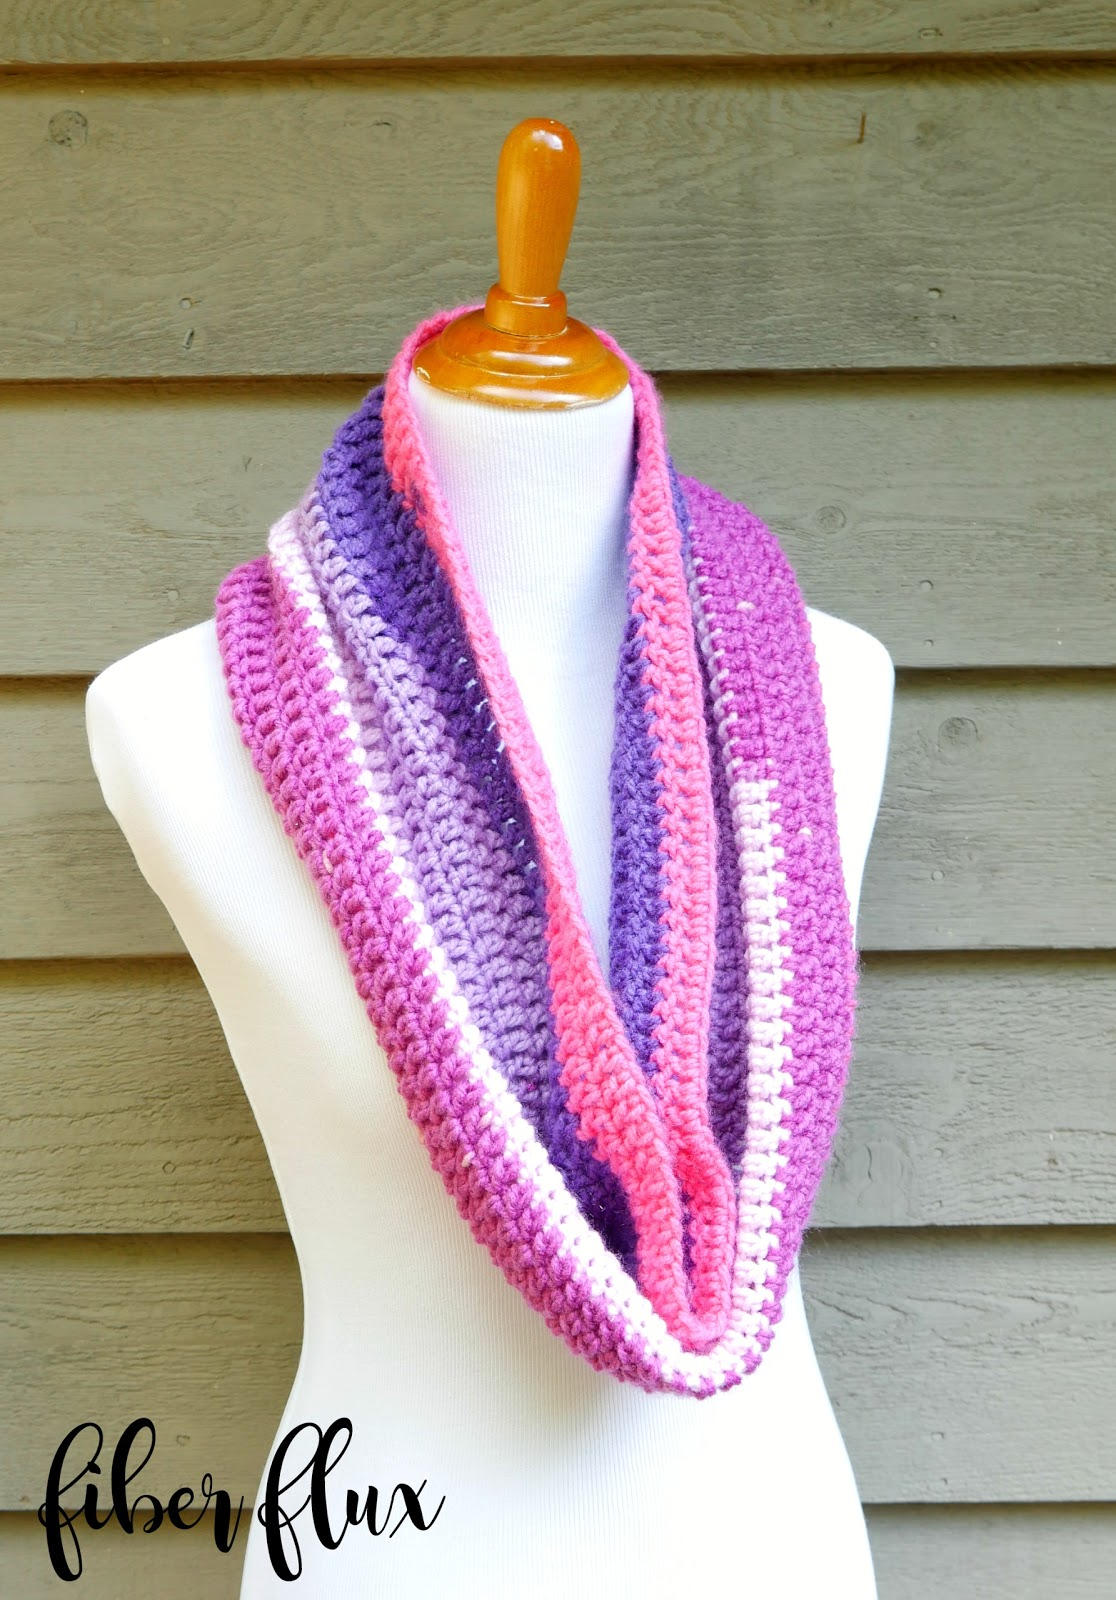 Fiber flux how to crochet a cowl for the absolute beginner learning how to crochet need a refresher or quick project youve come to the right place this beautifully striped beginner cowl is fun and super duper bankloansurffo Gallery